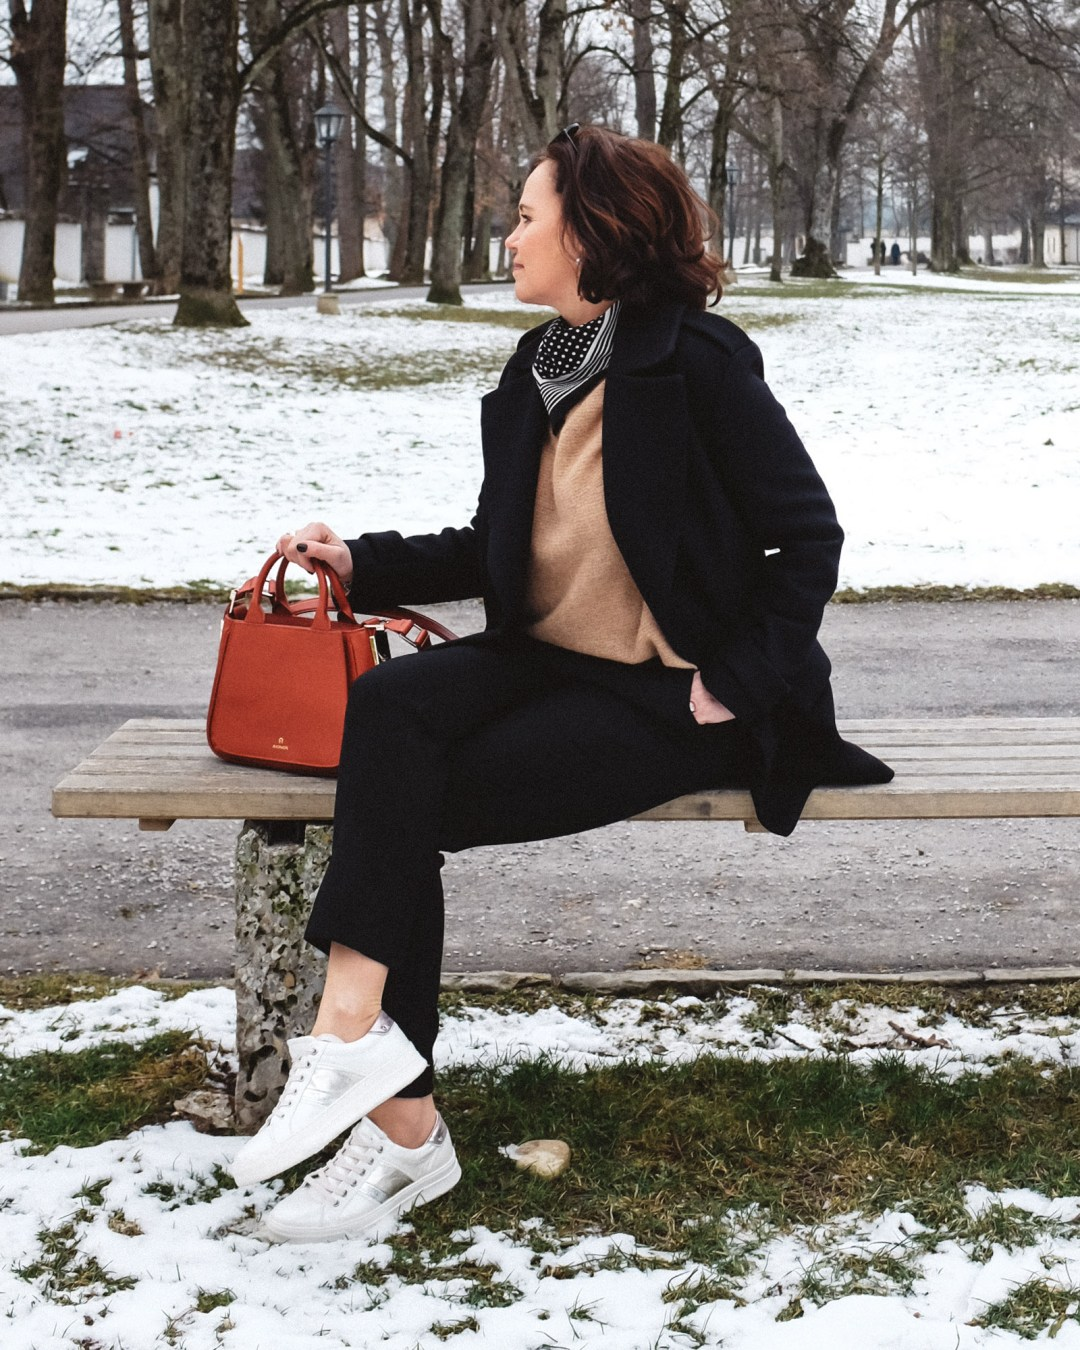 inastil, Ü50Blogger, Modeberatung, Stilberatung, Ü50Mode, Styleover50, Cabanjacke, Aignertasche, weisse Sneaker, Casualstyle, Streetstyle-6